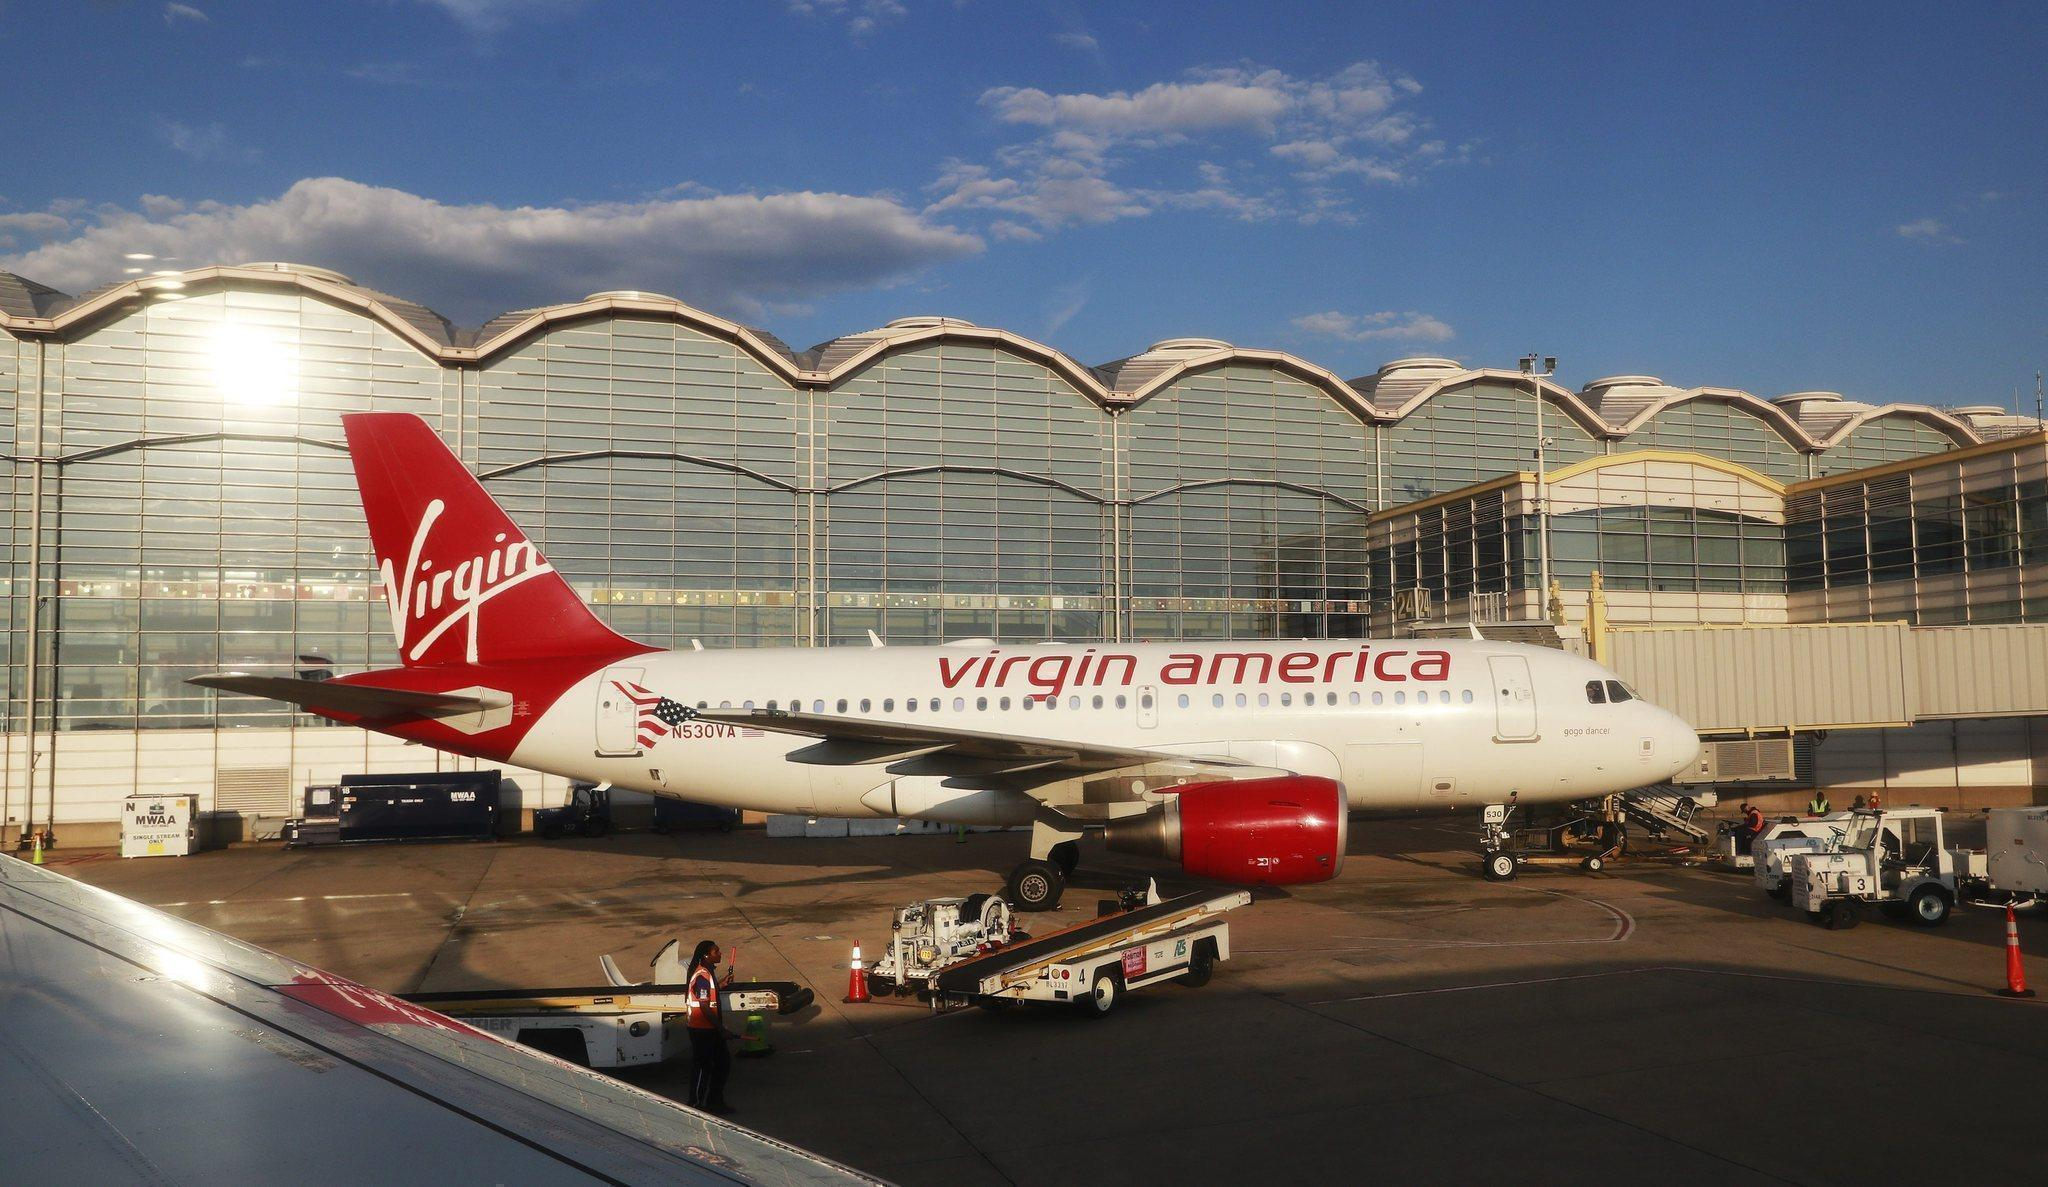 http://www.trbimg.com/img-5765749a/turbine/la-fi-travel-briefcase-virgin-20160618-snap